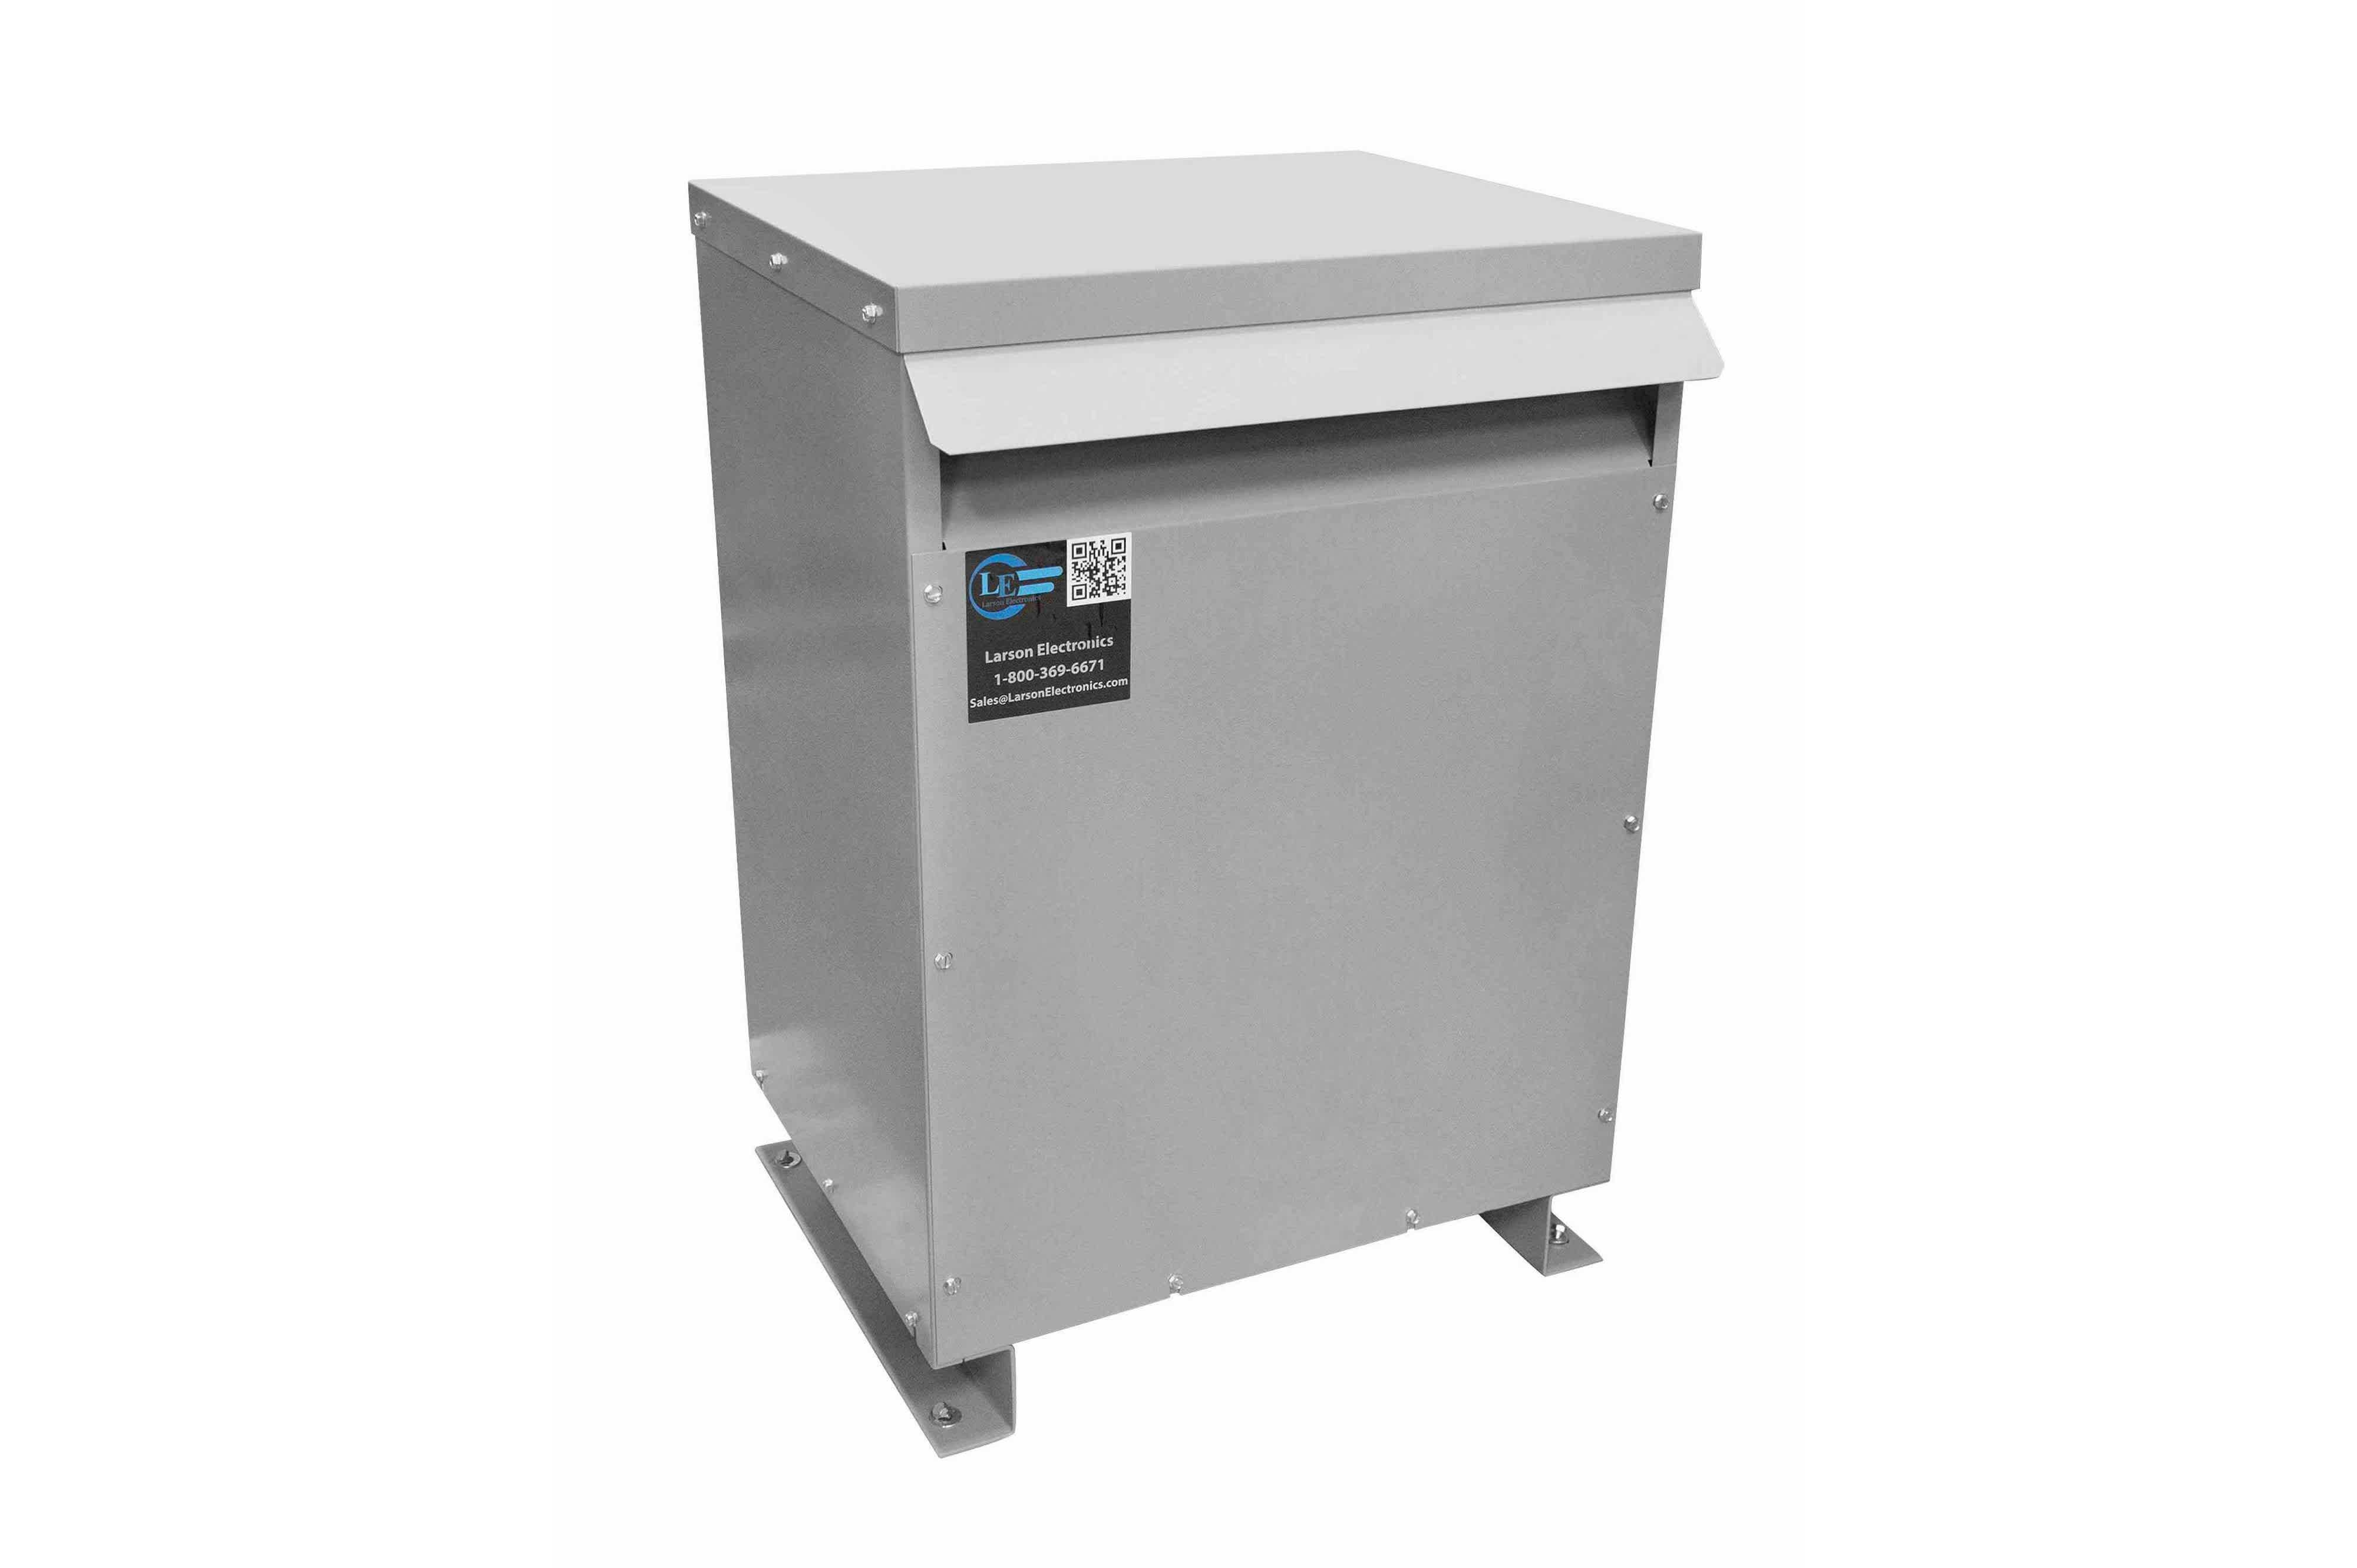 15 kVA 3PH Isolation Transformer, 600V Wye Primary, 208Y/120 Wye-N Secondary, N3R, Ventilated, 60 Hz